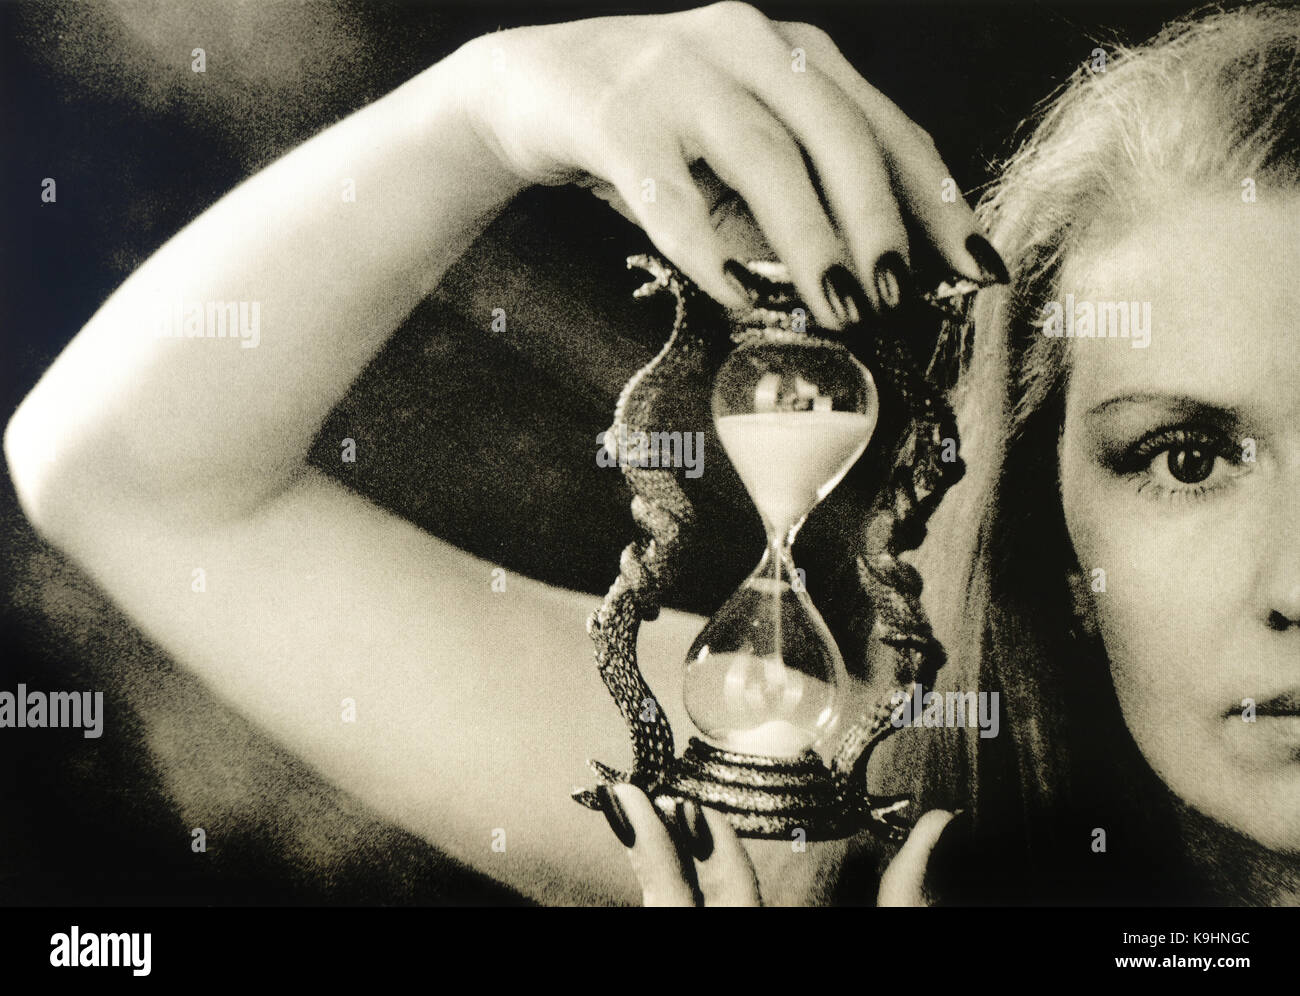 A beautiful girl is holding an hourglass. Attention! The photo was made using the technology of lithographic printing. - Stock Image